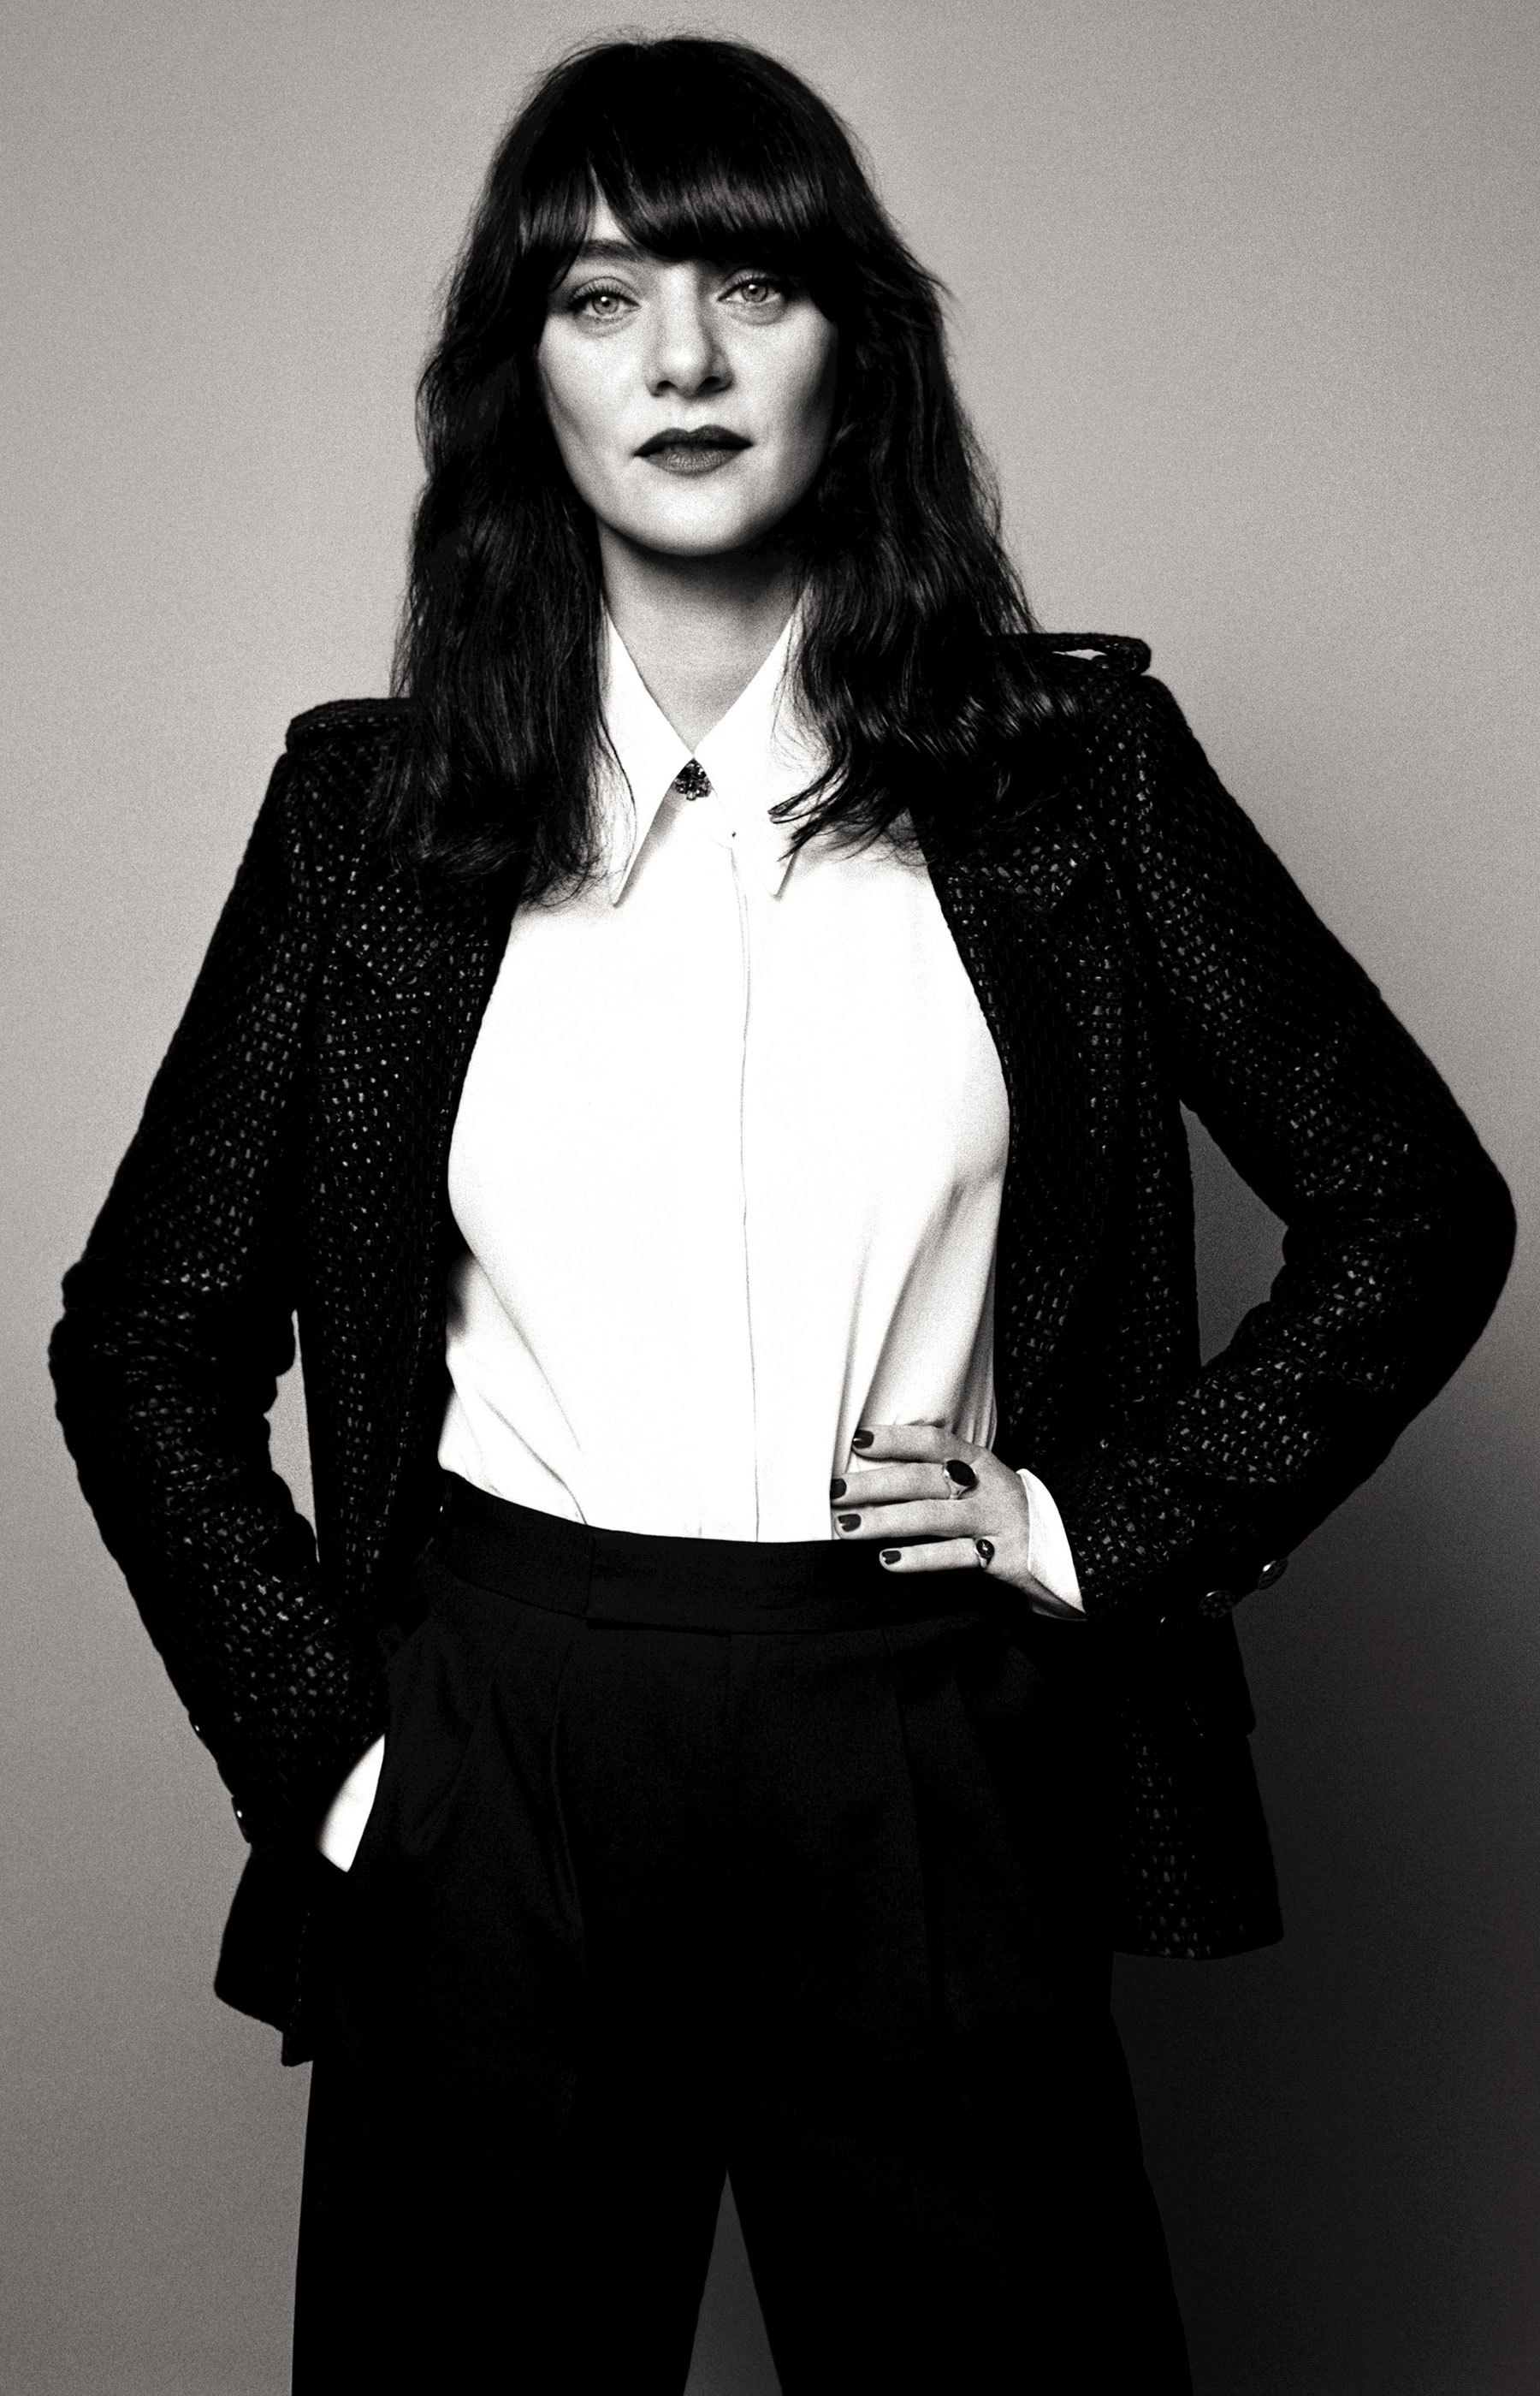 Lucia Pica, Global Creative Designer pour le Maquillage et la Couleur de CHANEL © Chanel